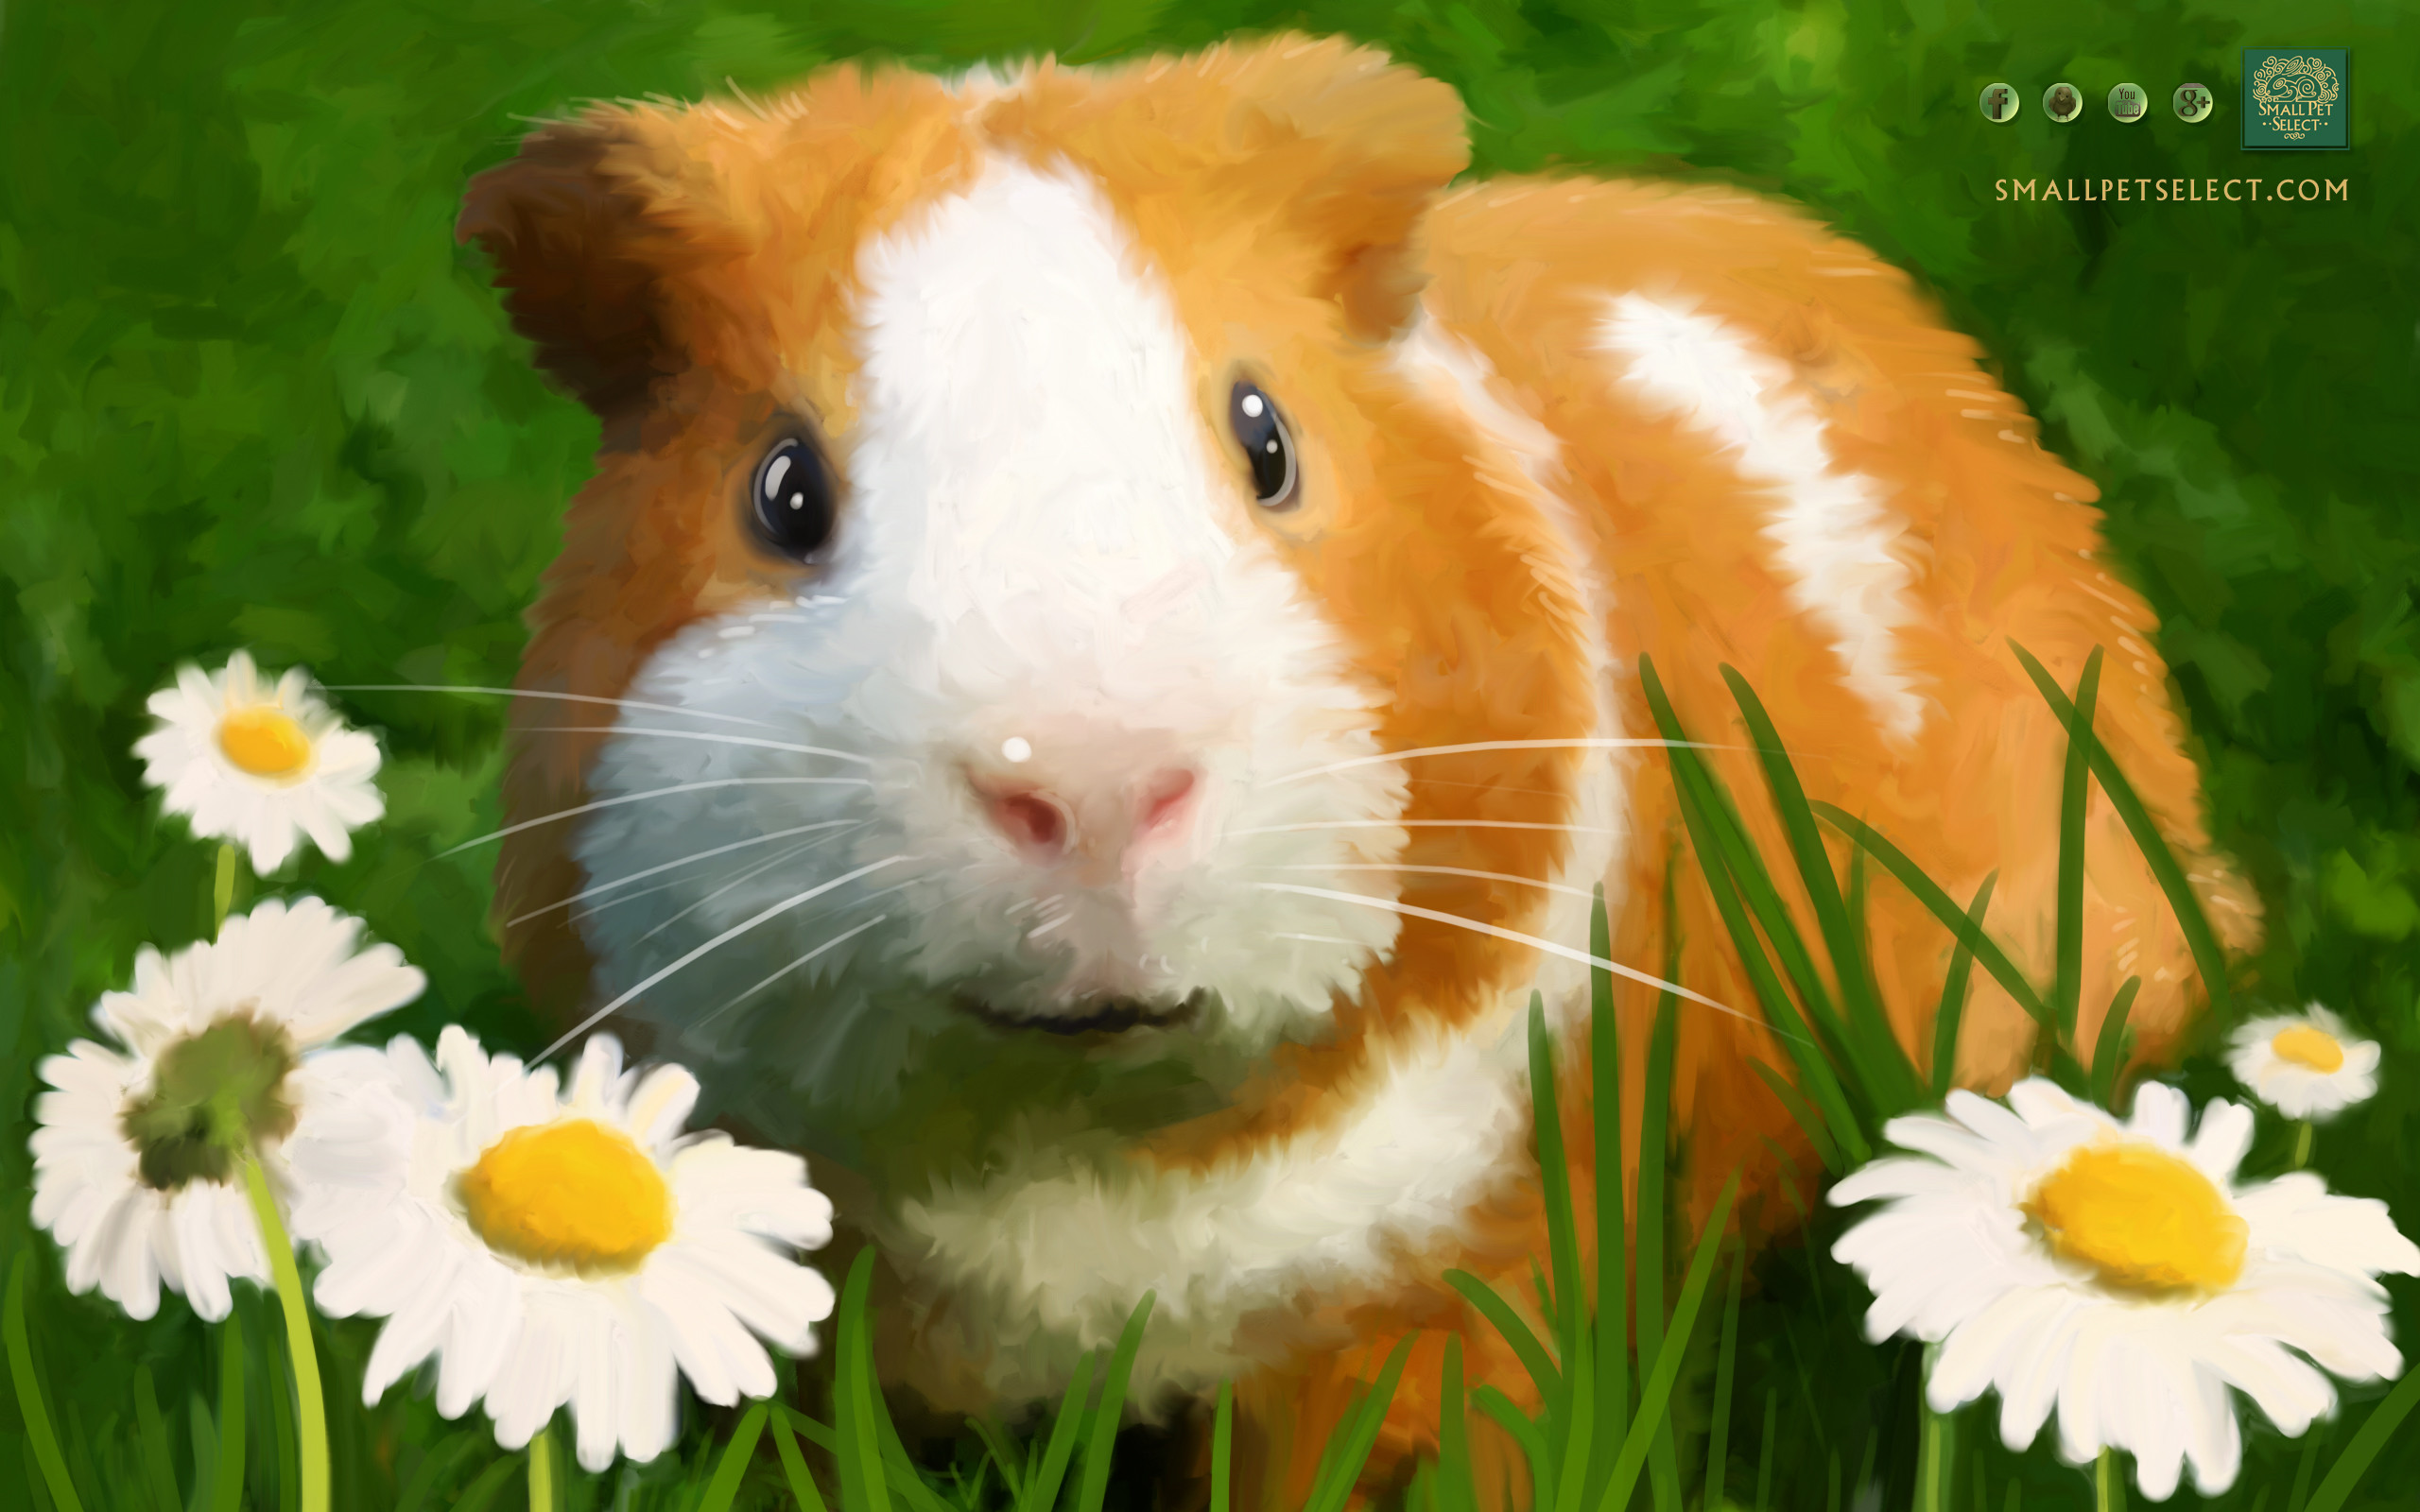 Guinea Pig Wallpaper – Screensaver for your PC, MAC, Ipad & cell phone